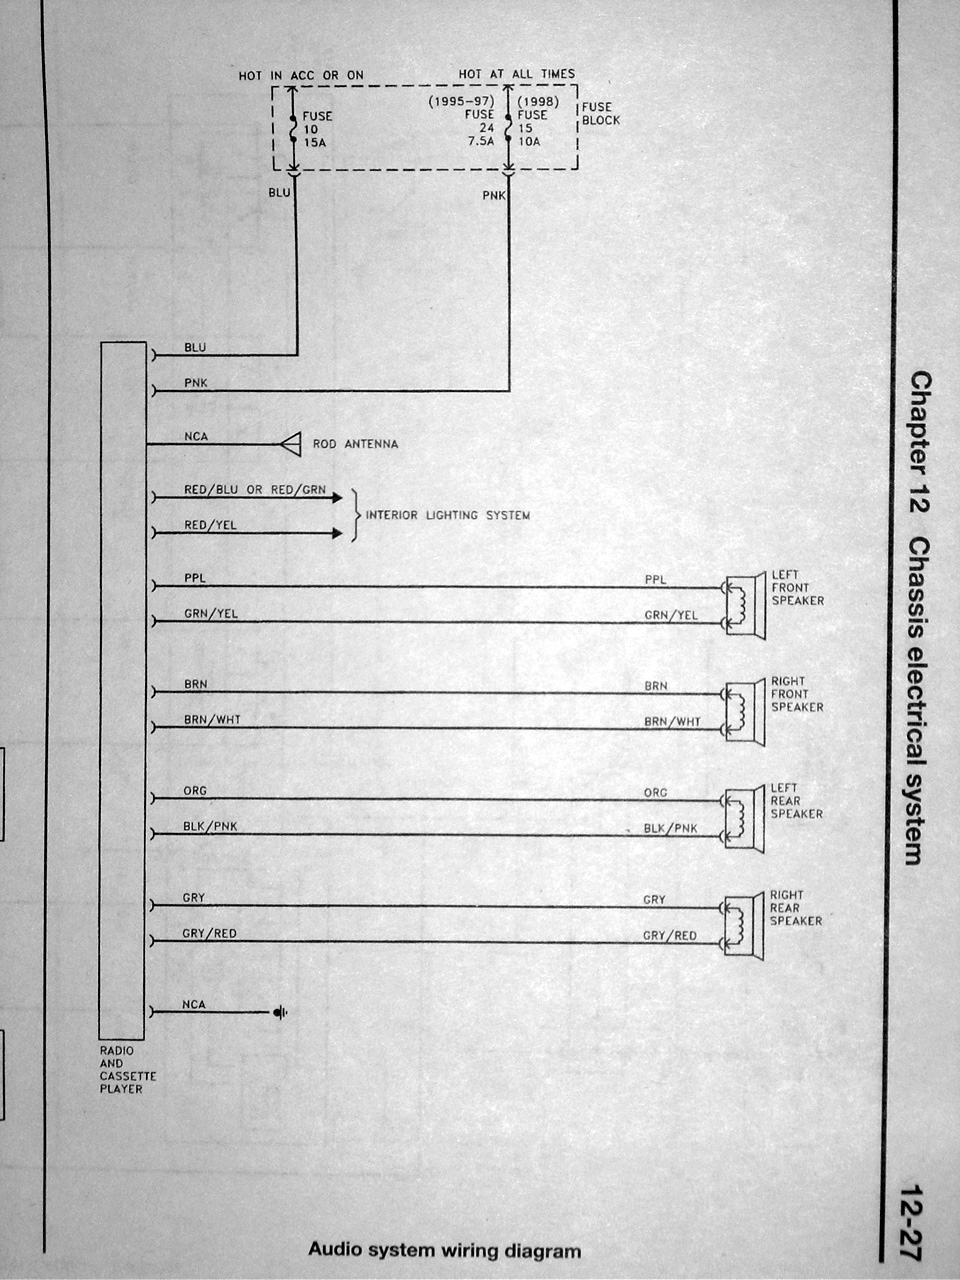 2009 Maxima Fuse Box | Wiring Diagrams on nissan ignition resistor, nissan fuel pump, nissan diesel conversion, nissan transaxle, nissan schematic diagram, nissan repair diagrams, nissan electrical diagrams, nissan suspension diagram, nissan repair guide, nissan main fuse, nissan fuel system diagram, nissan radiator diagram, nissan distributor diagram, nissan ignition key, nissan brakes diagram, nissan chassis diagram, nissan engine diagram, nissan battery diagram, nissan wire harness diagram, nissan body diagram,